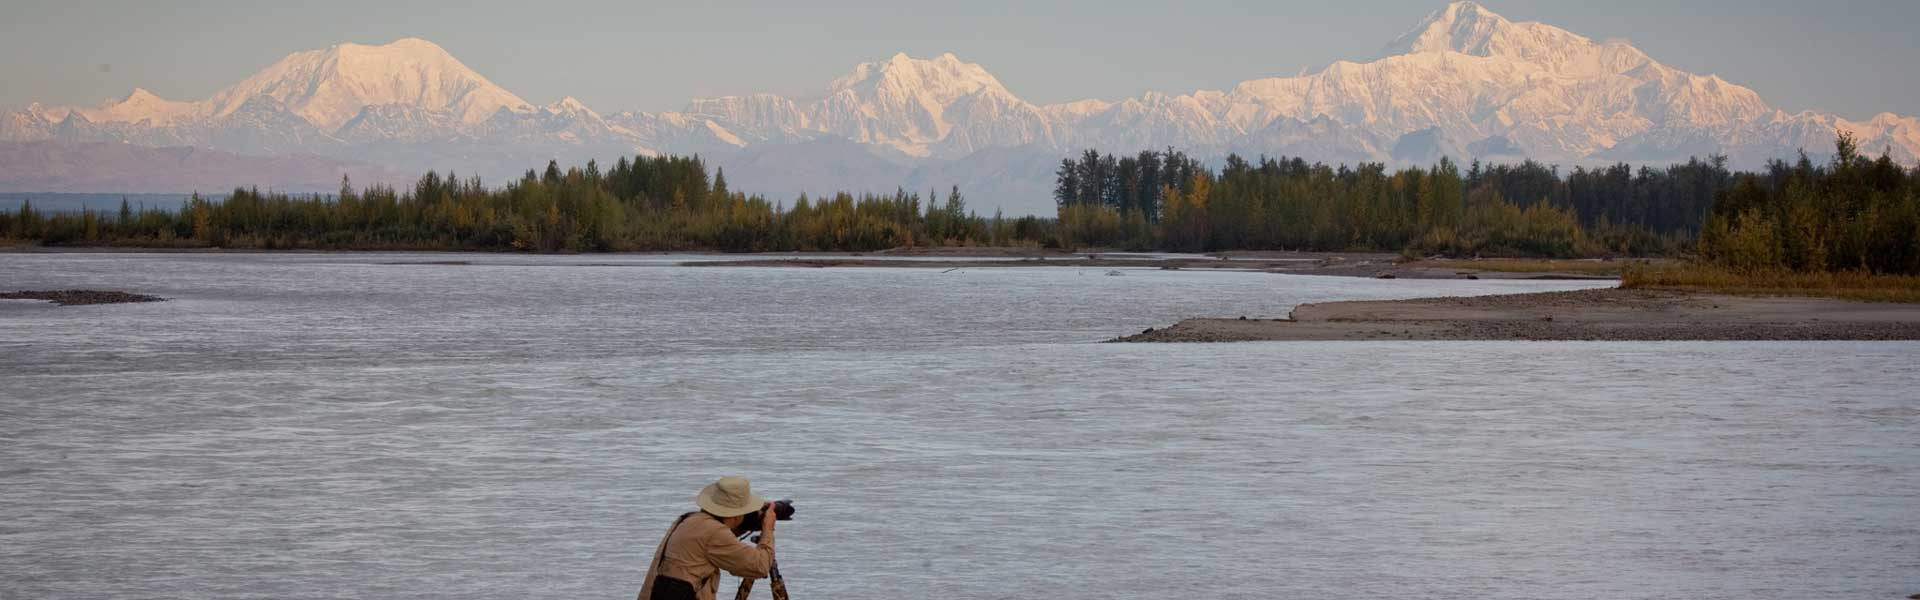 Talkeetna | Talkeetna Alaska Day Tours & Sightseeing